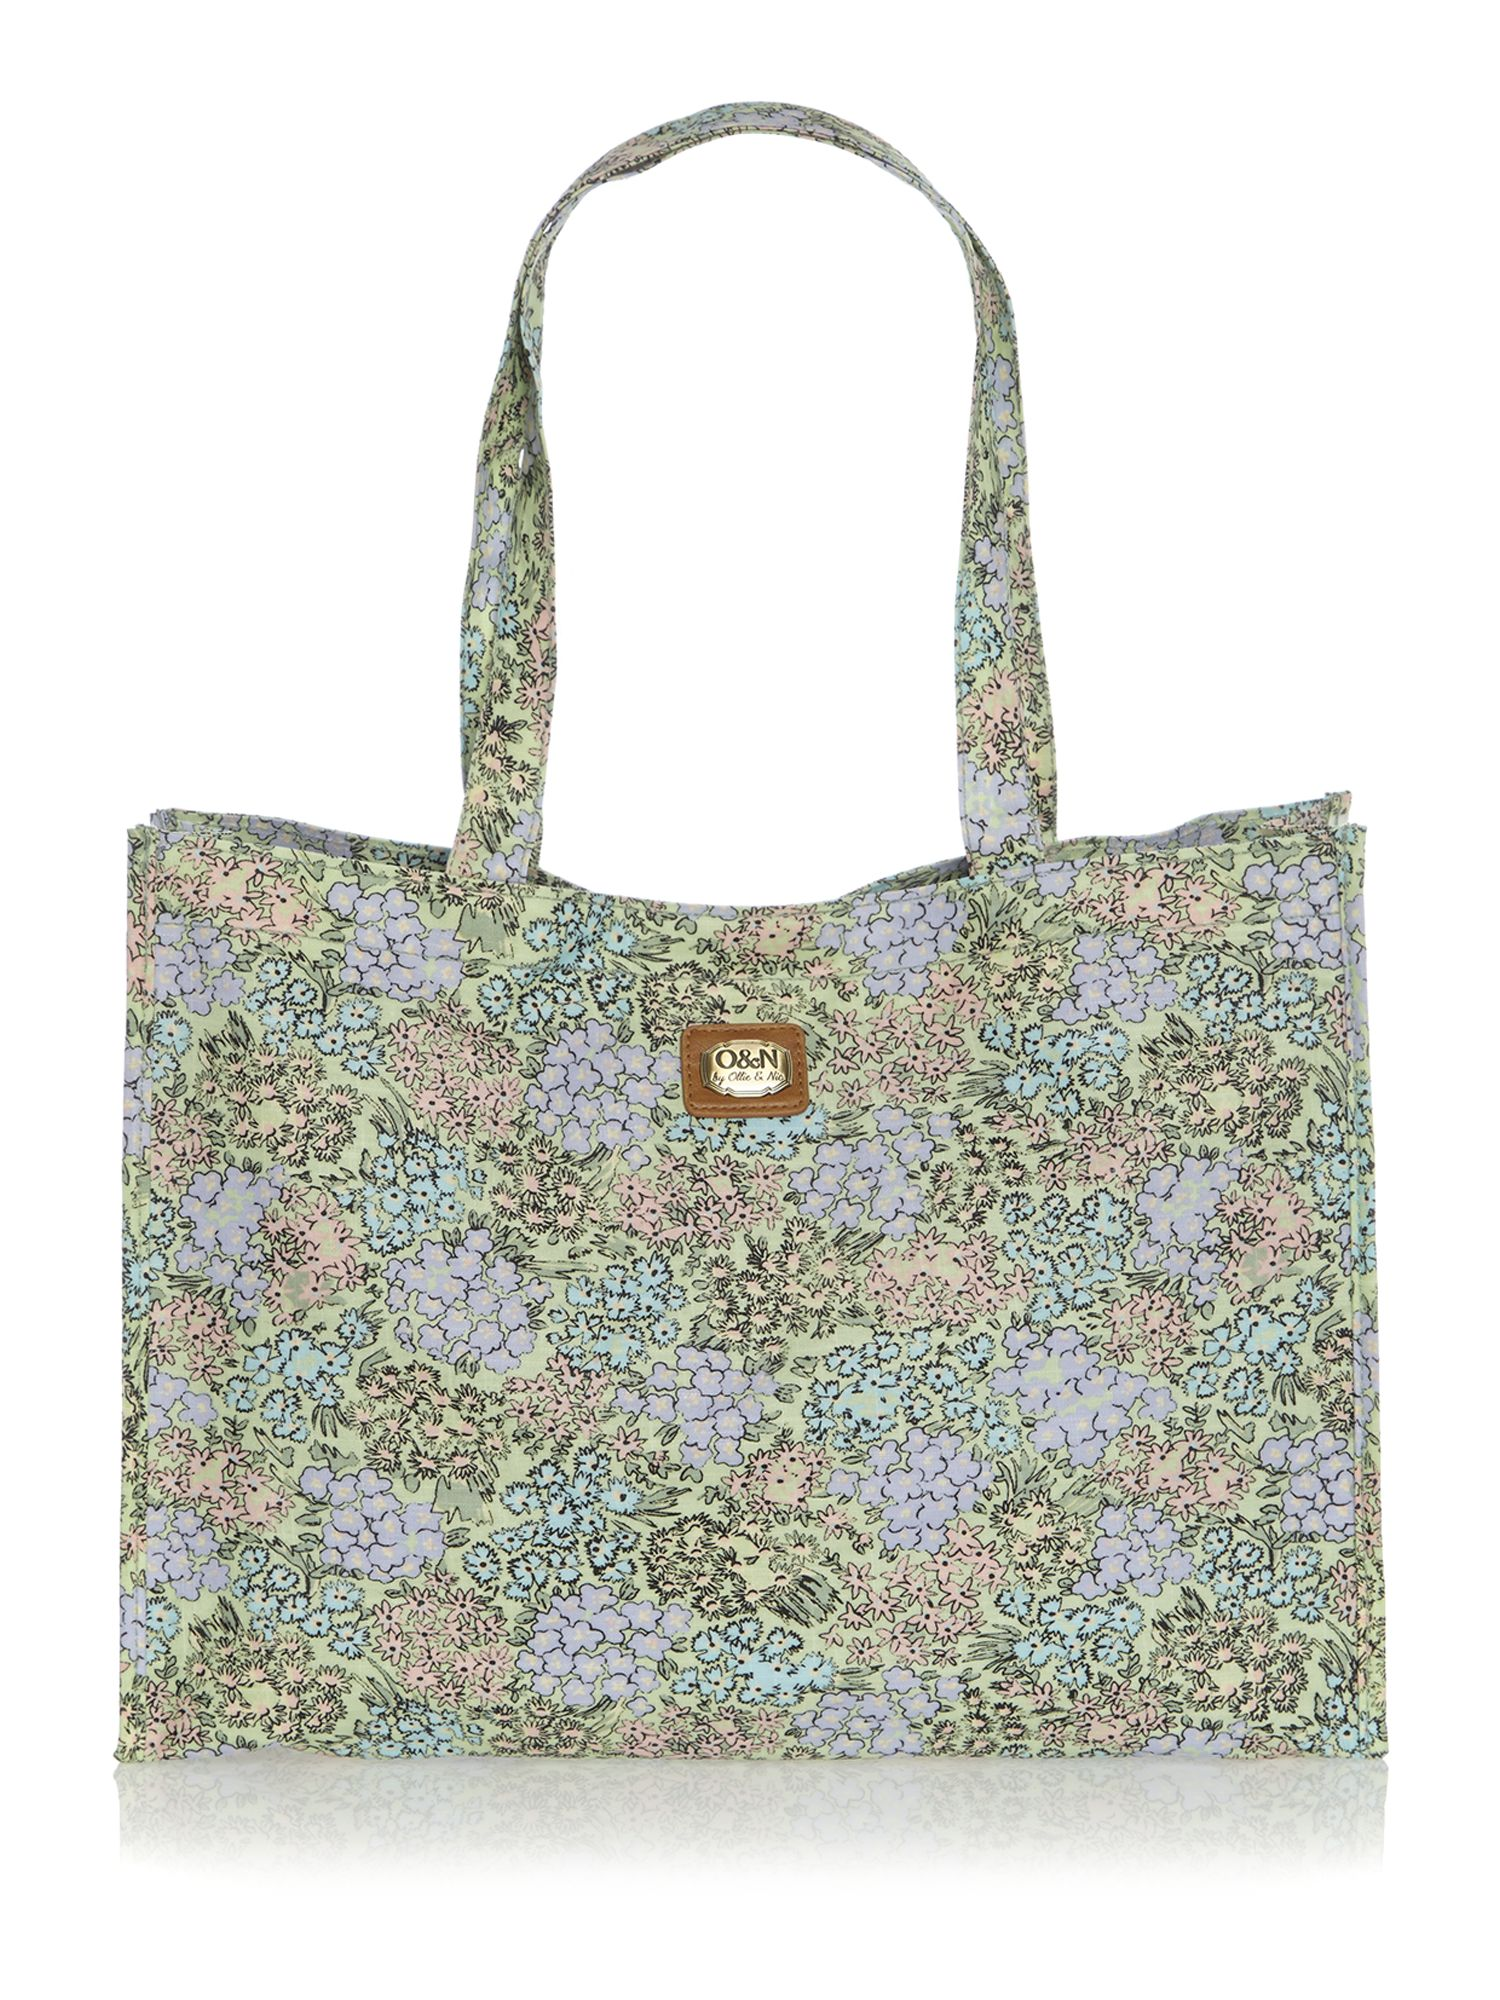 Busy lizzie multi-coloured tote bag